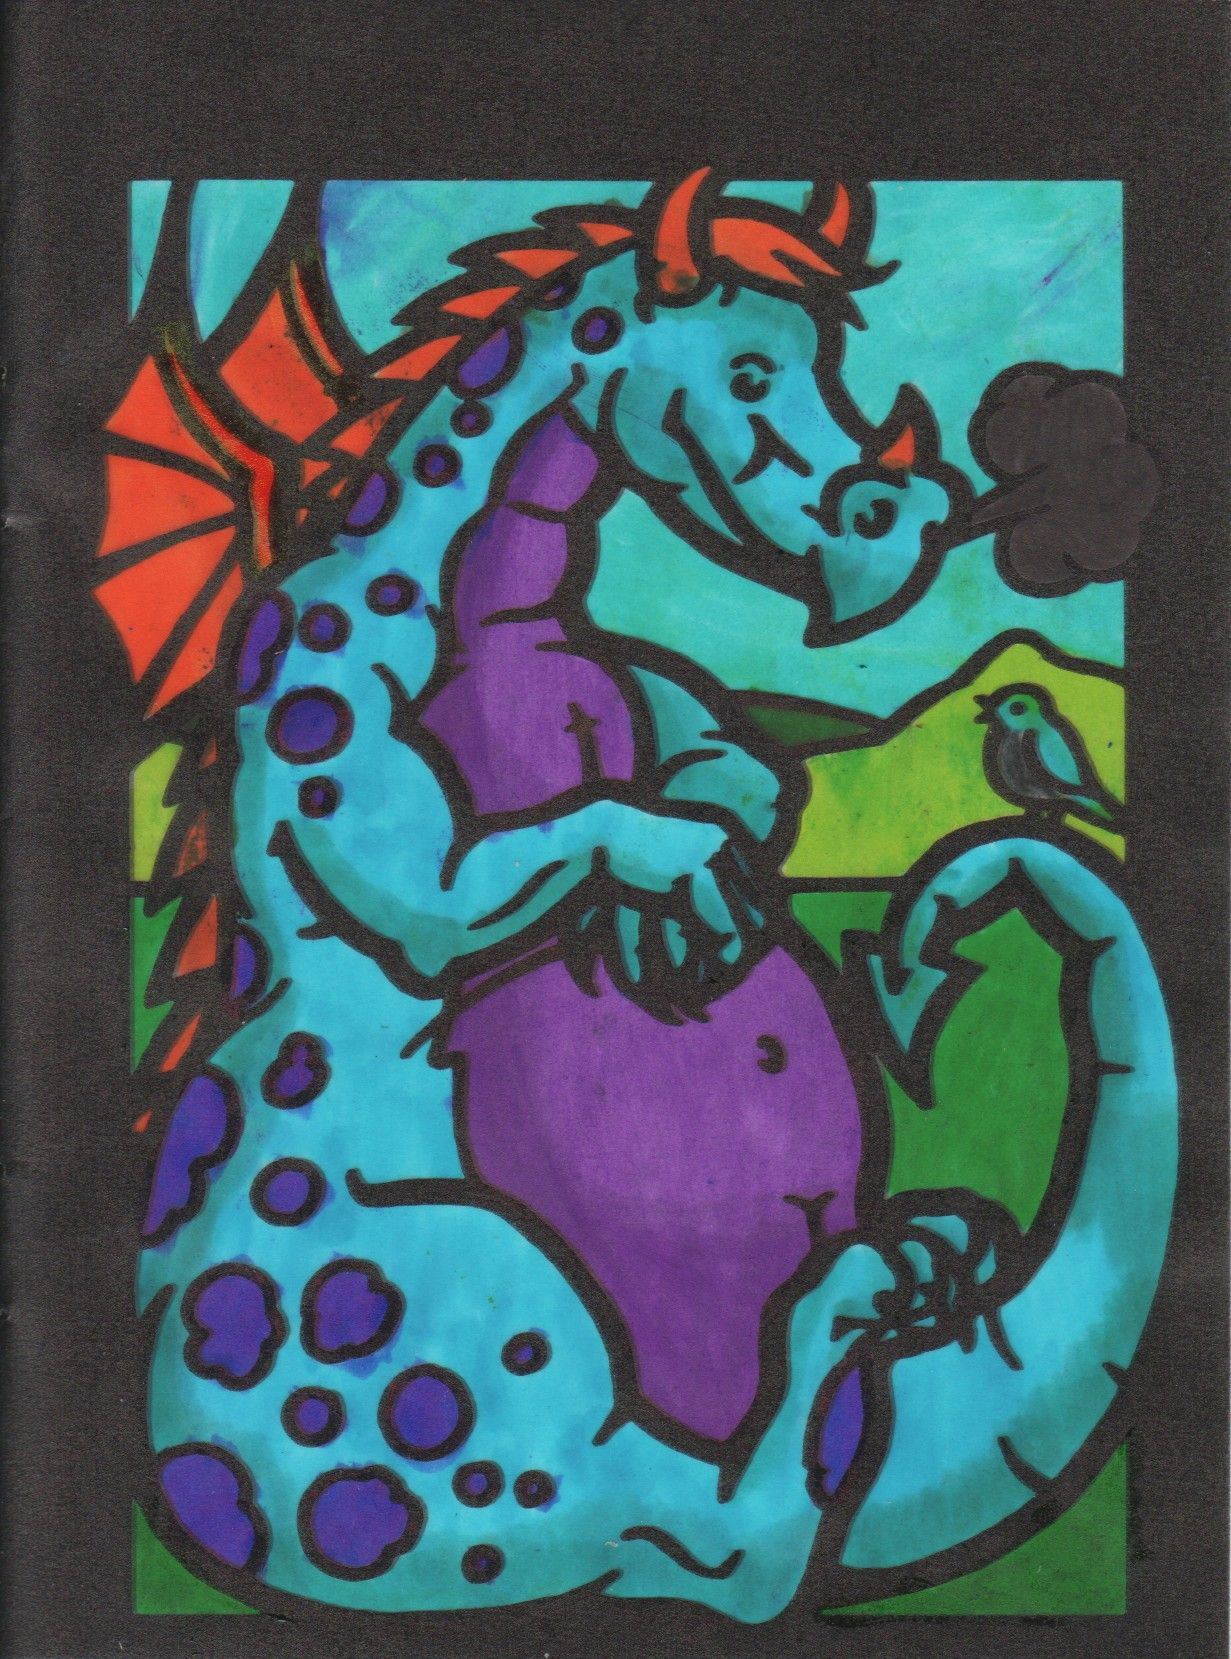 Maya M age 12 (12 - 18 division) from Dragons Stained Glass Coloring Book: http://store.doverpublications.com/0486291502.html